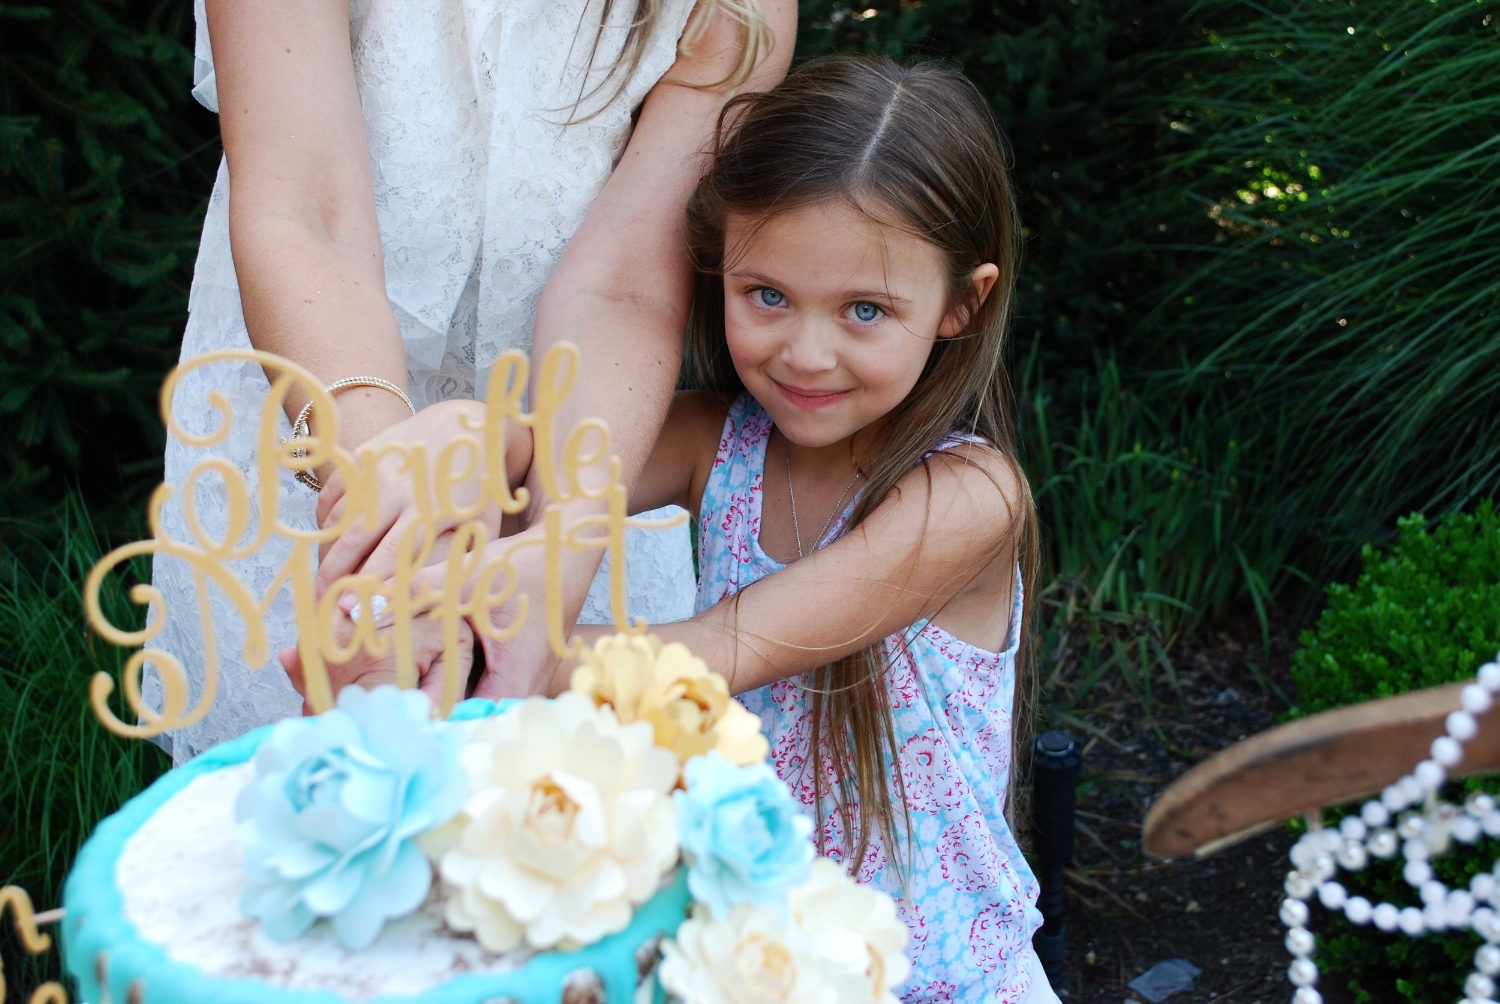 ...and to finish off this beautiful day was little Abbey assisting the future Mrs. Brielle Marie Maffett in cutting the cake.